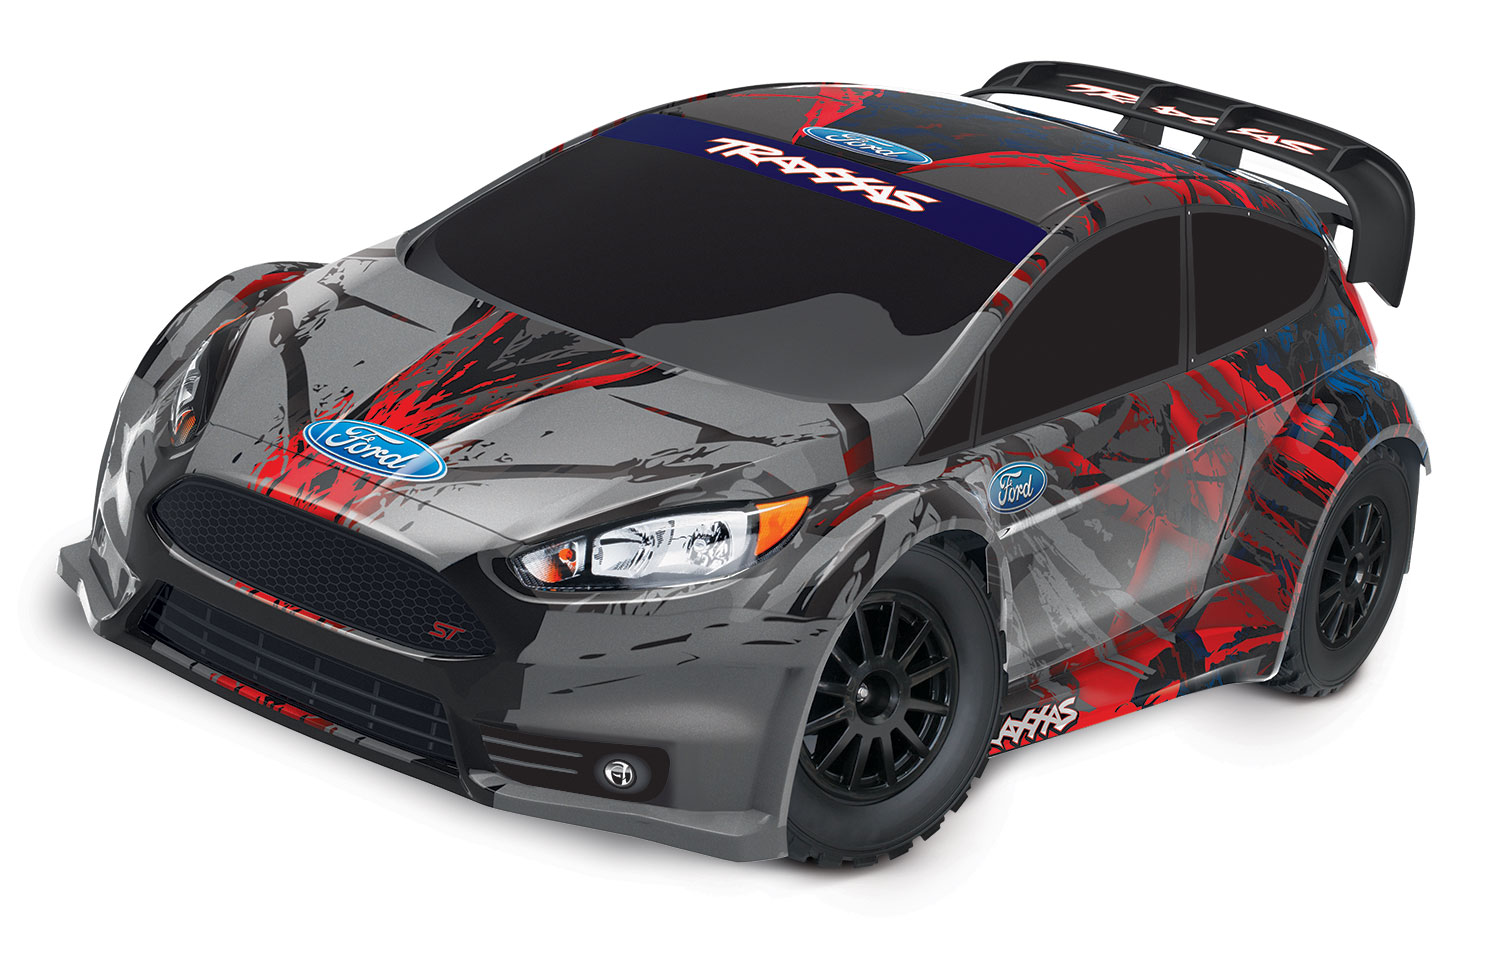 vintage remote control cars with Rc Ford Fiesta St Rally Traxxas 110 Scale on Index15 further Classic Car For Kids With Remote Control likewise Mini Transformers Toys reviews together with Rc Plane Beginners further Zuege Mit Motor Eisenbahn Zug Mit Lok.